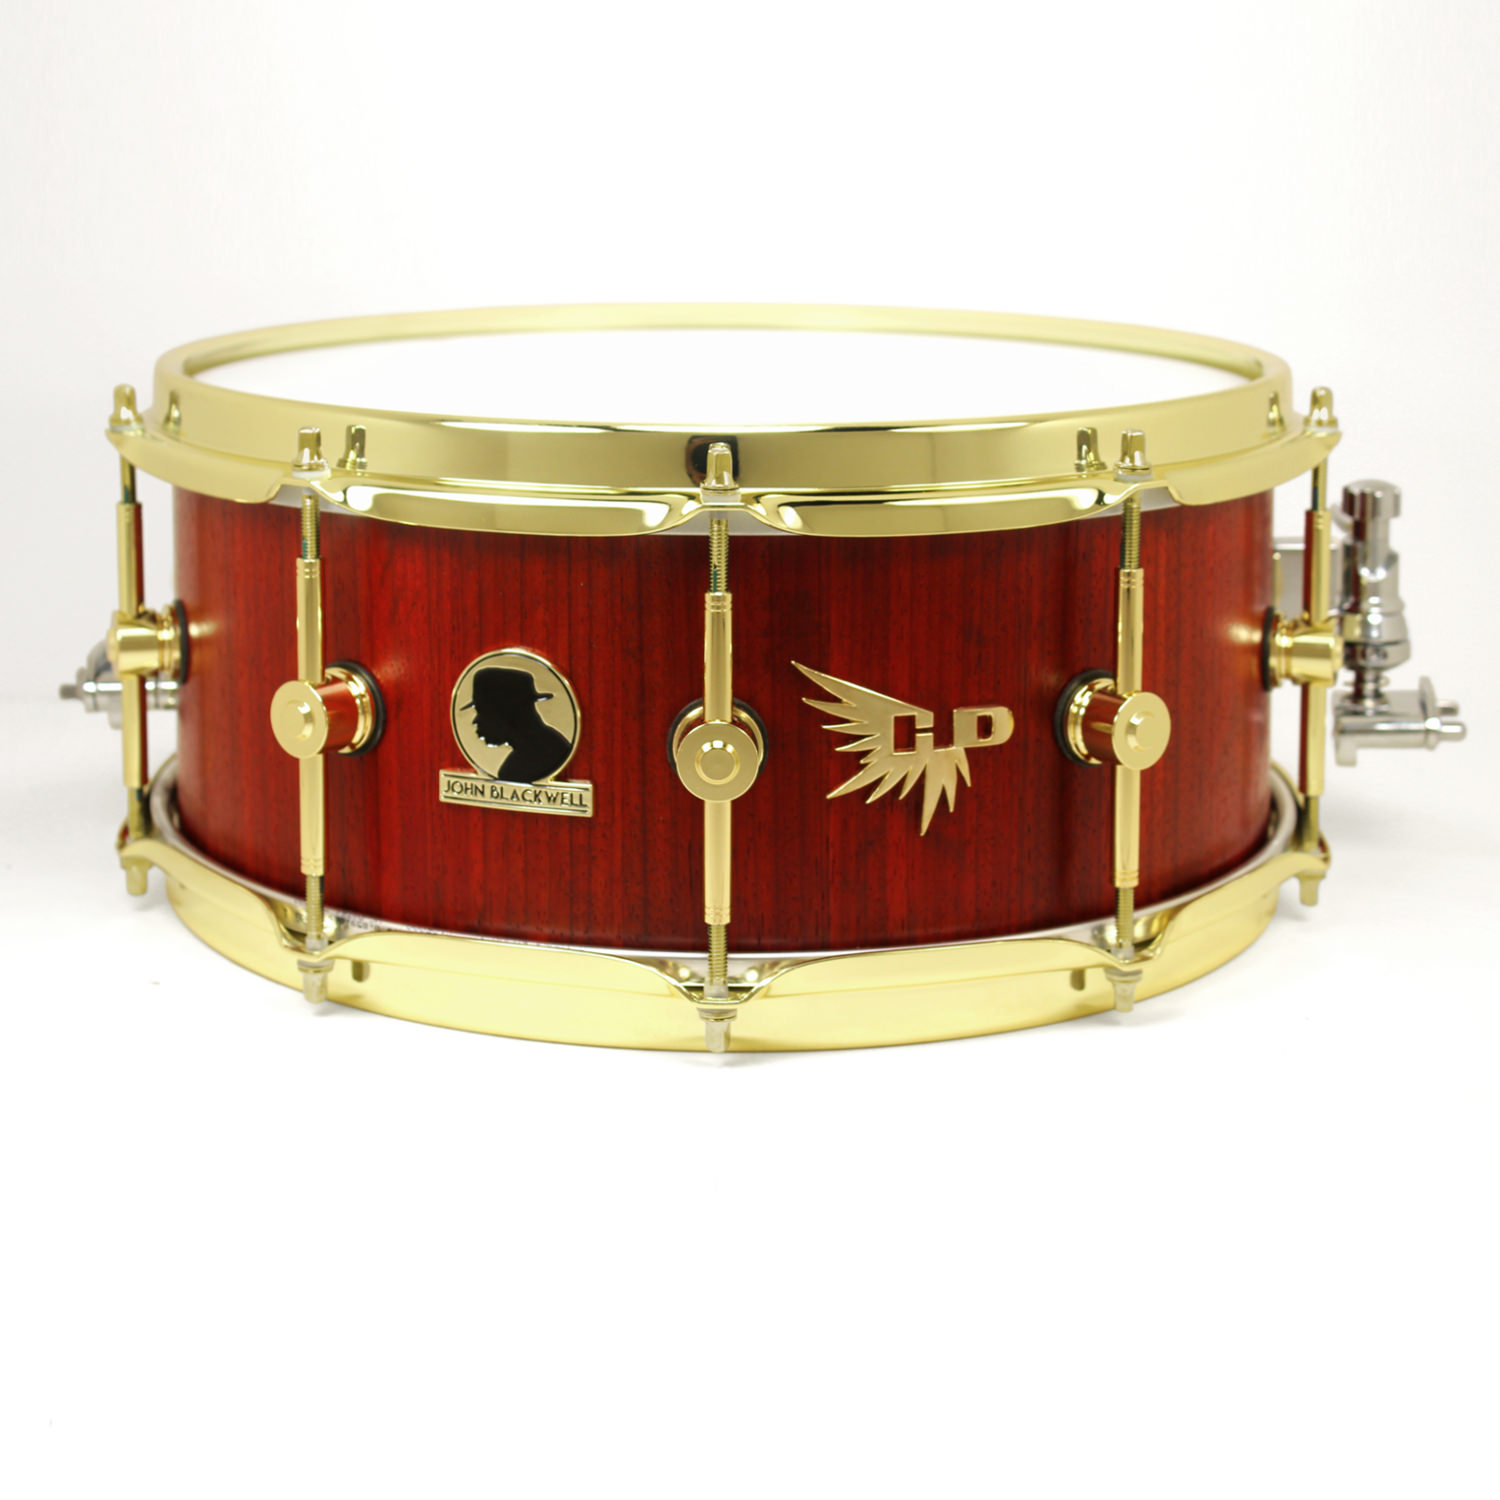 John Blackwell Signature Original Snare Drum Hendrix Drums Custom HD